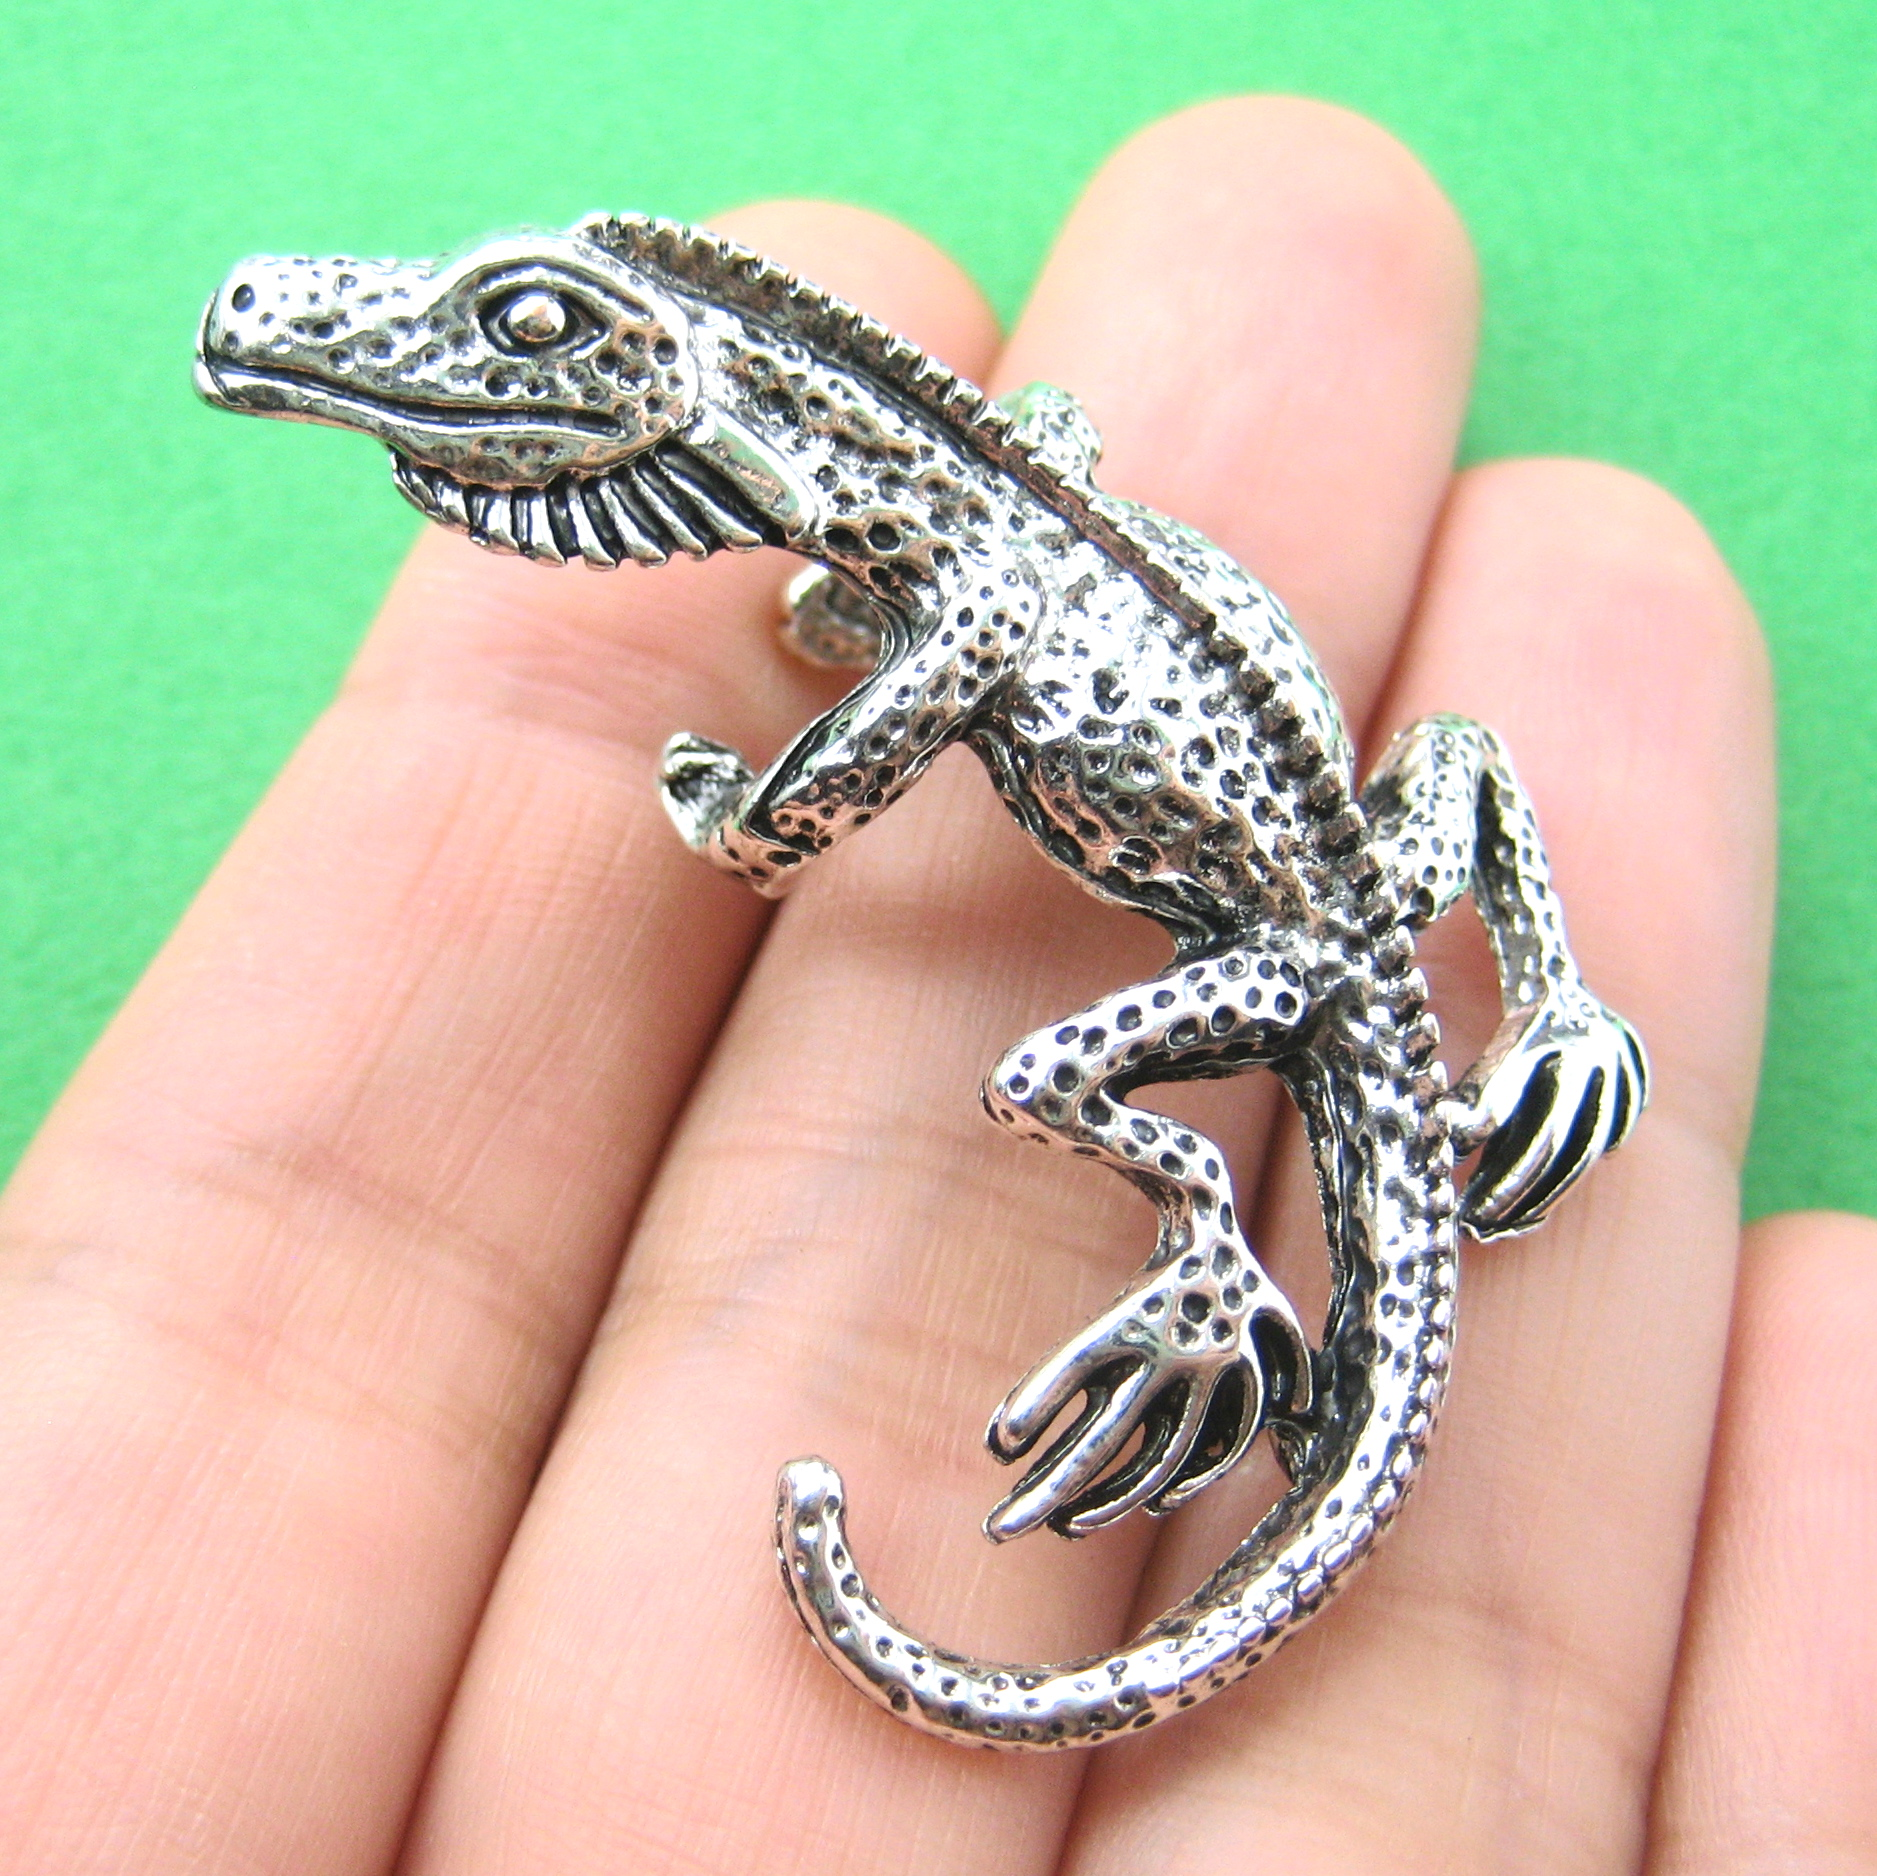 cool dragon thumb ring lizard s super ya products collections solid rock rings v throne sterling the style thai silver